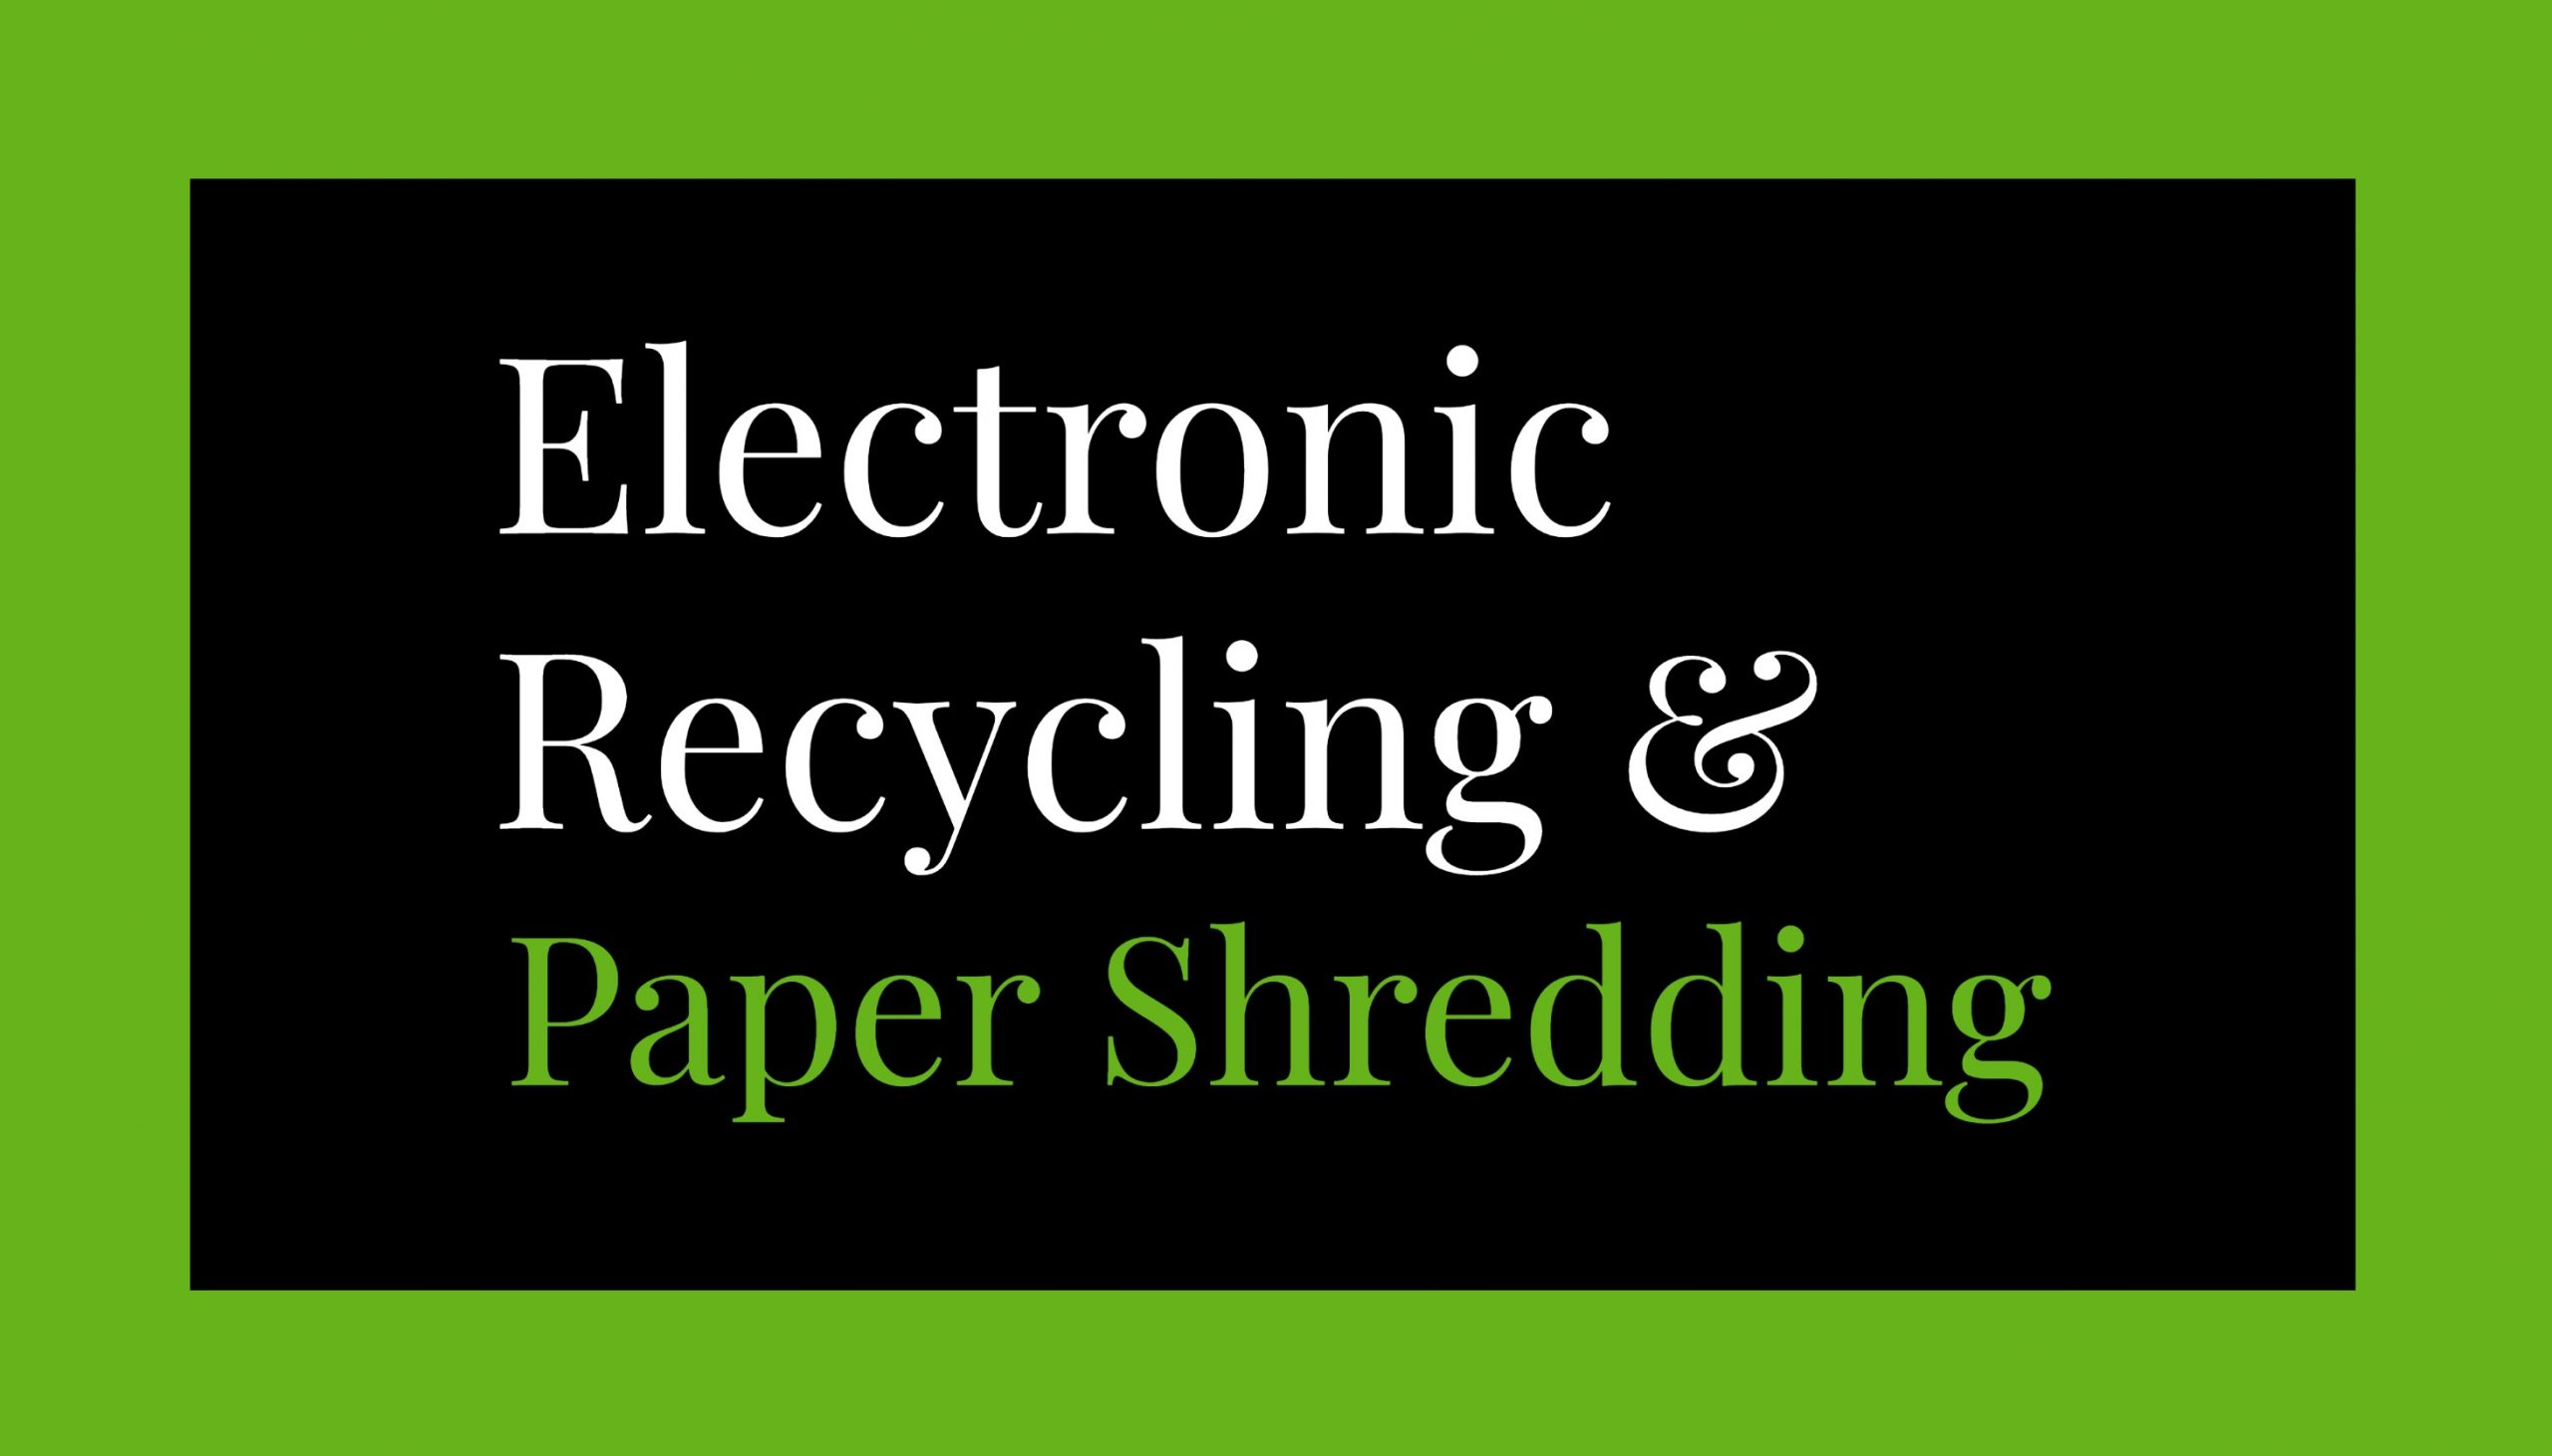 Electronic Recycling & Paper Shredding